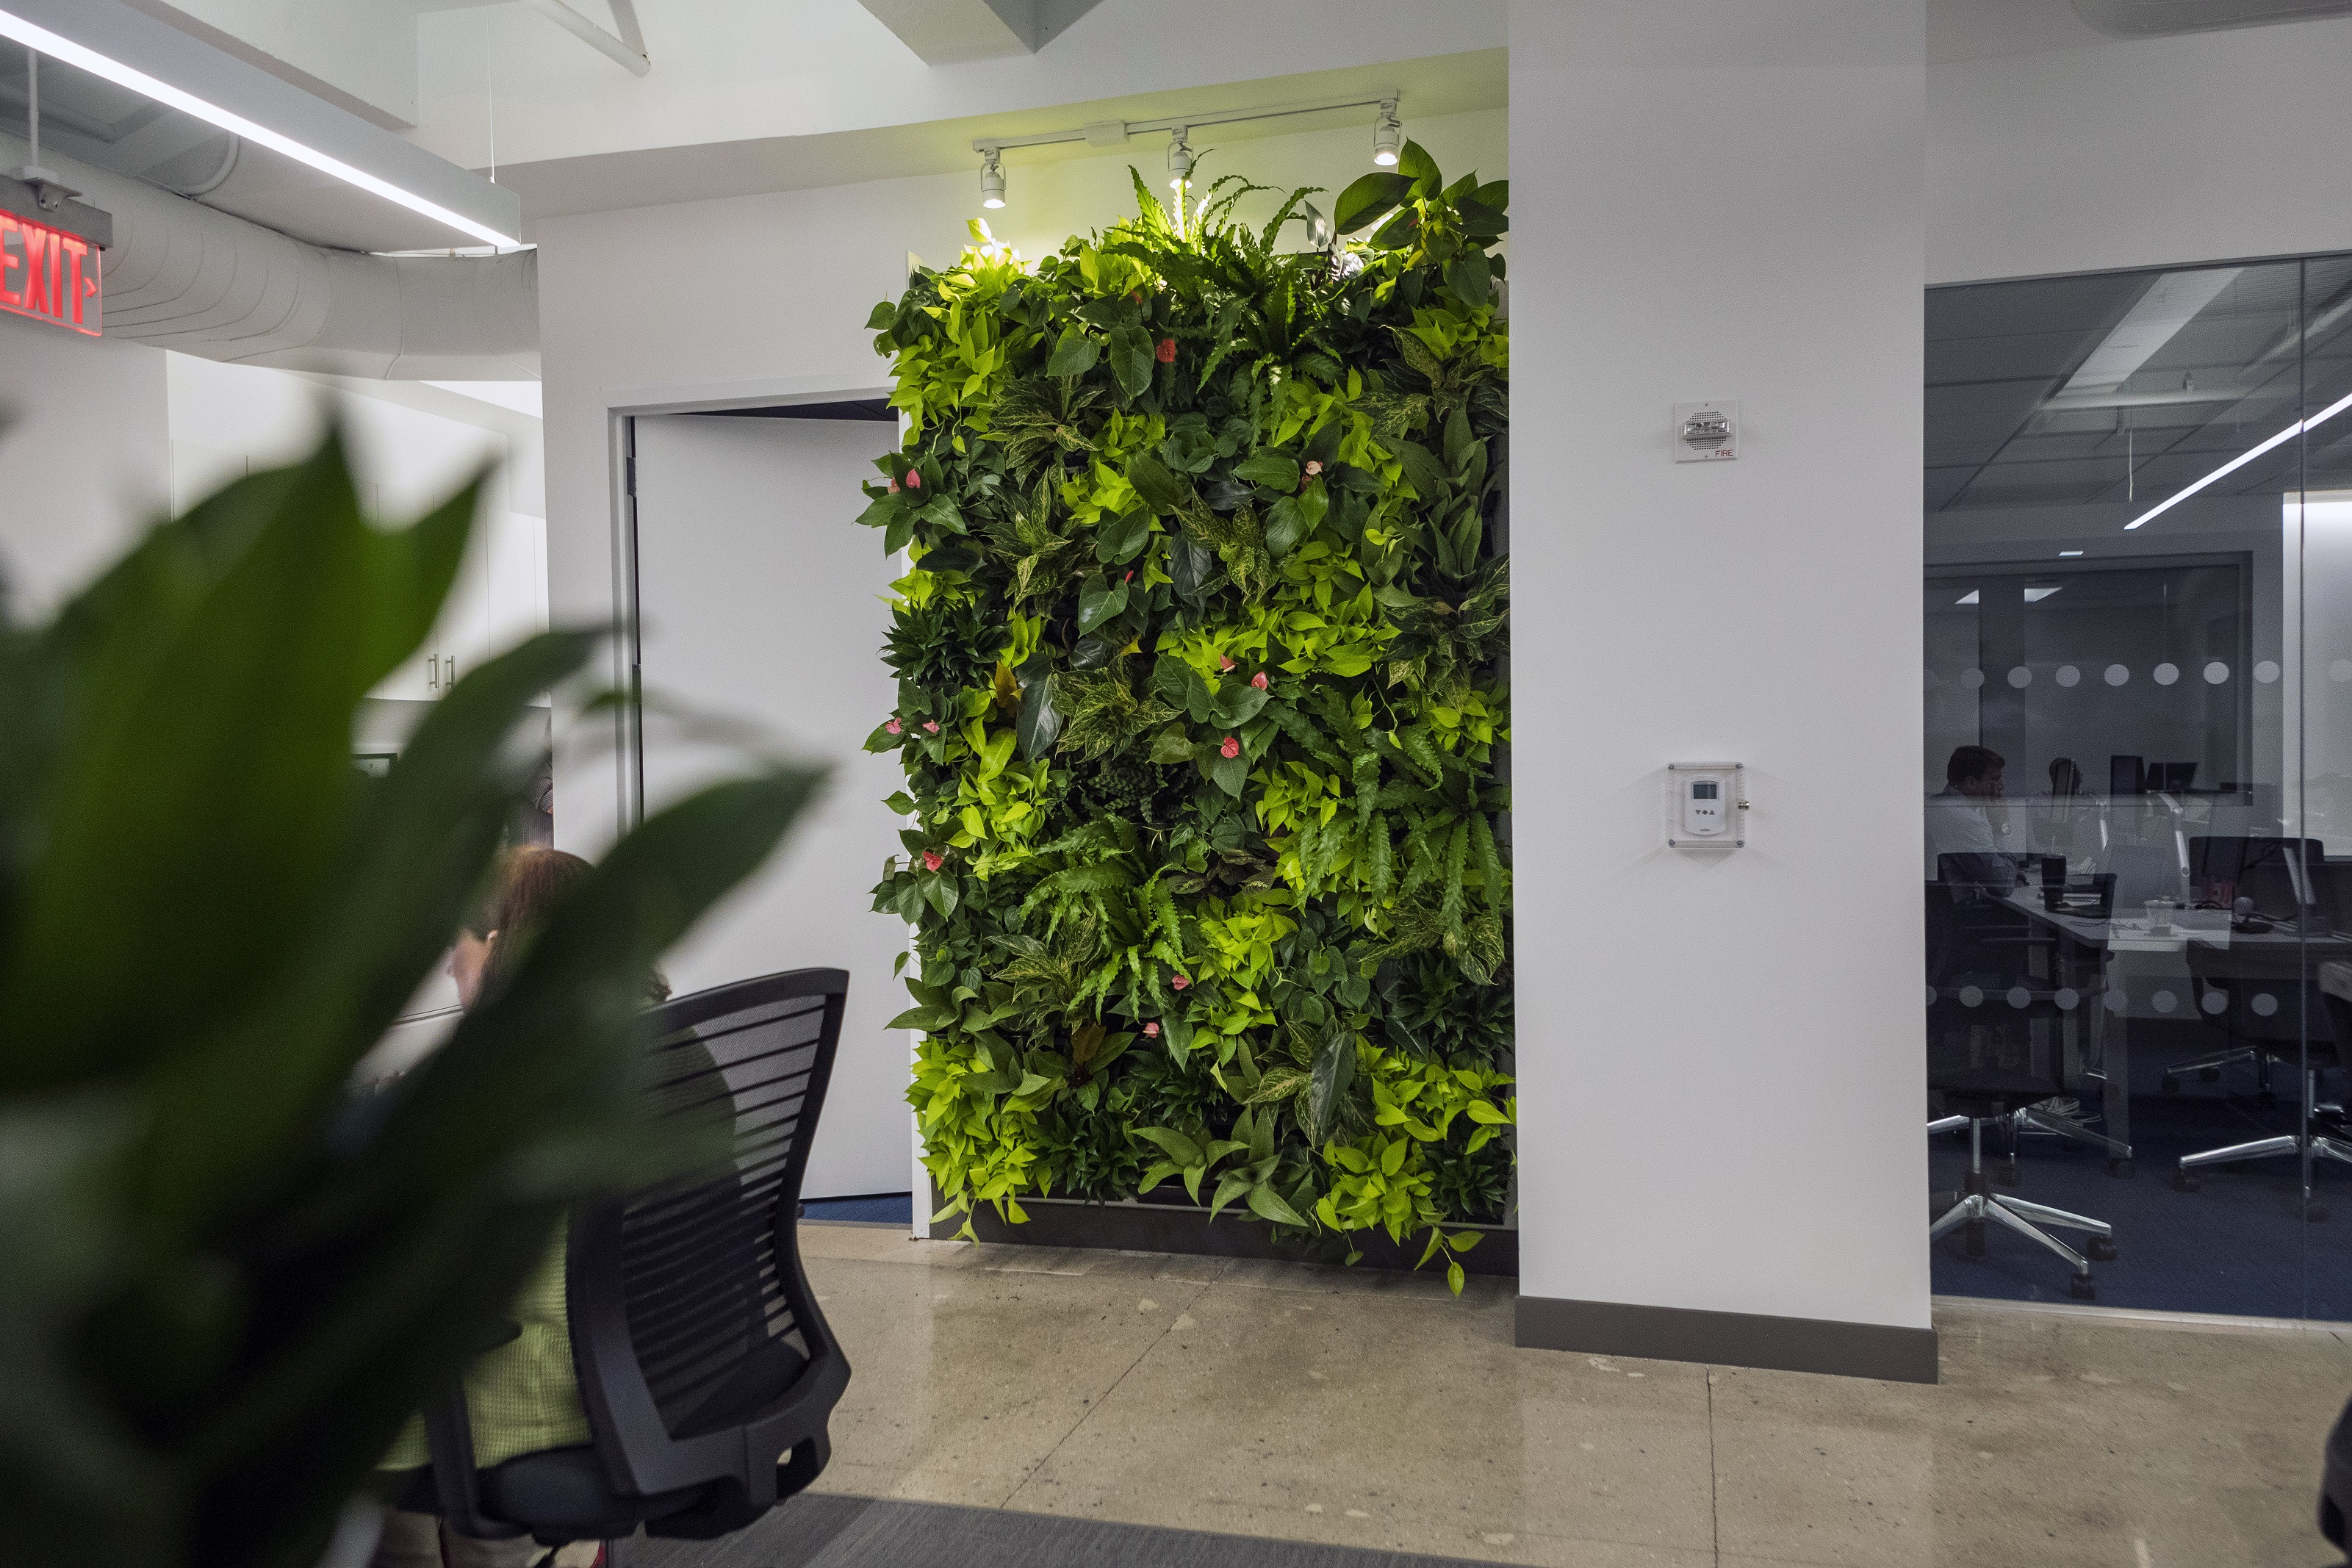 Our attention to detail in hand selecting each plant creates an eye-catching display in this office space.